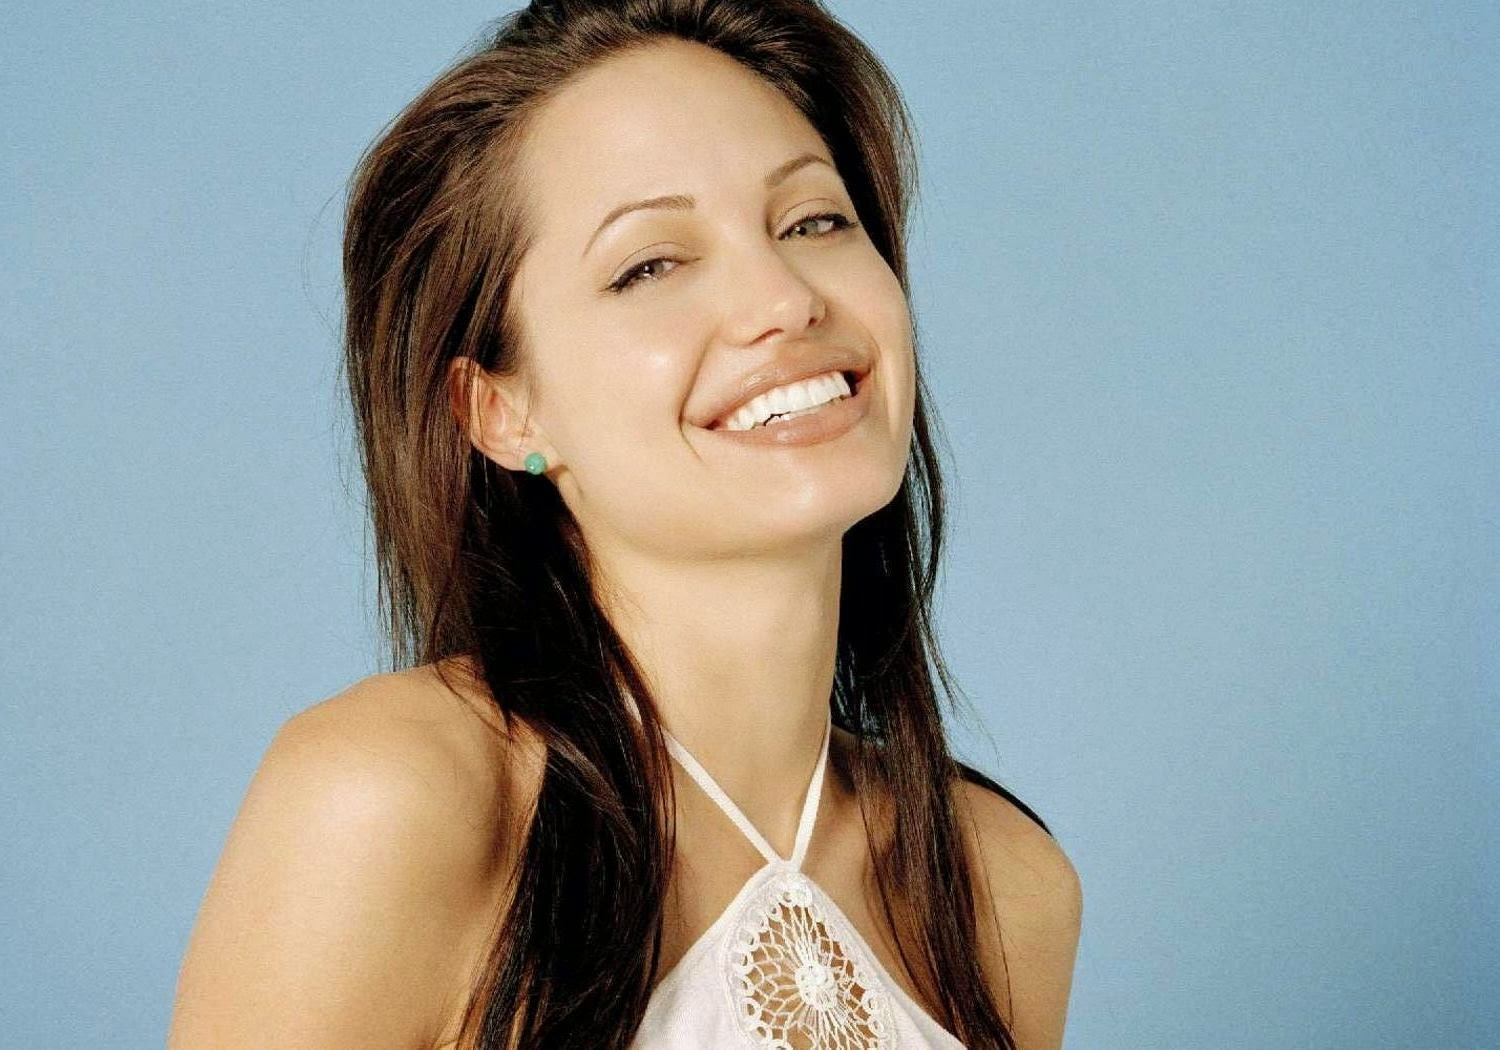 ALL STAR HD WALLPAPERS DOWNLOAD Angelina Jolie HD Wallpapers 1500x1050